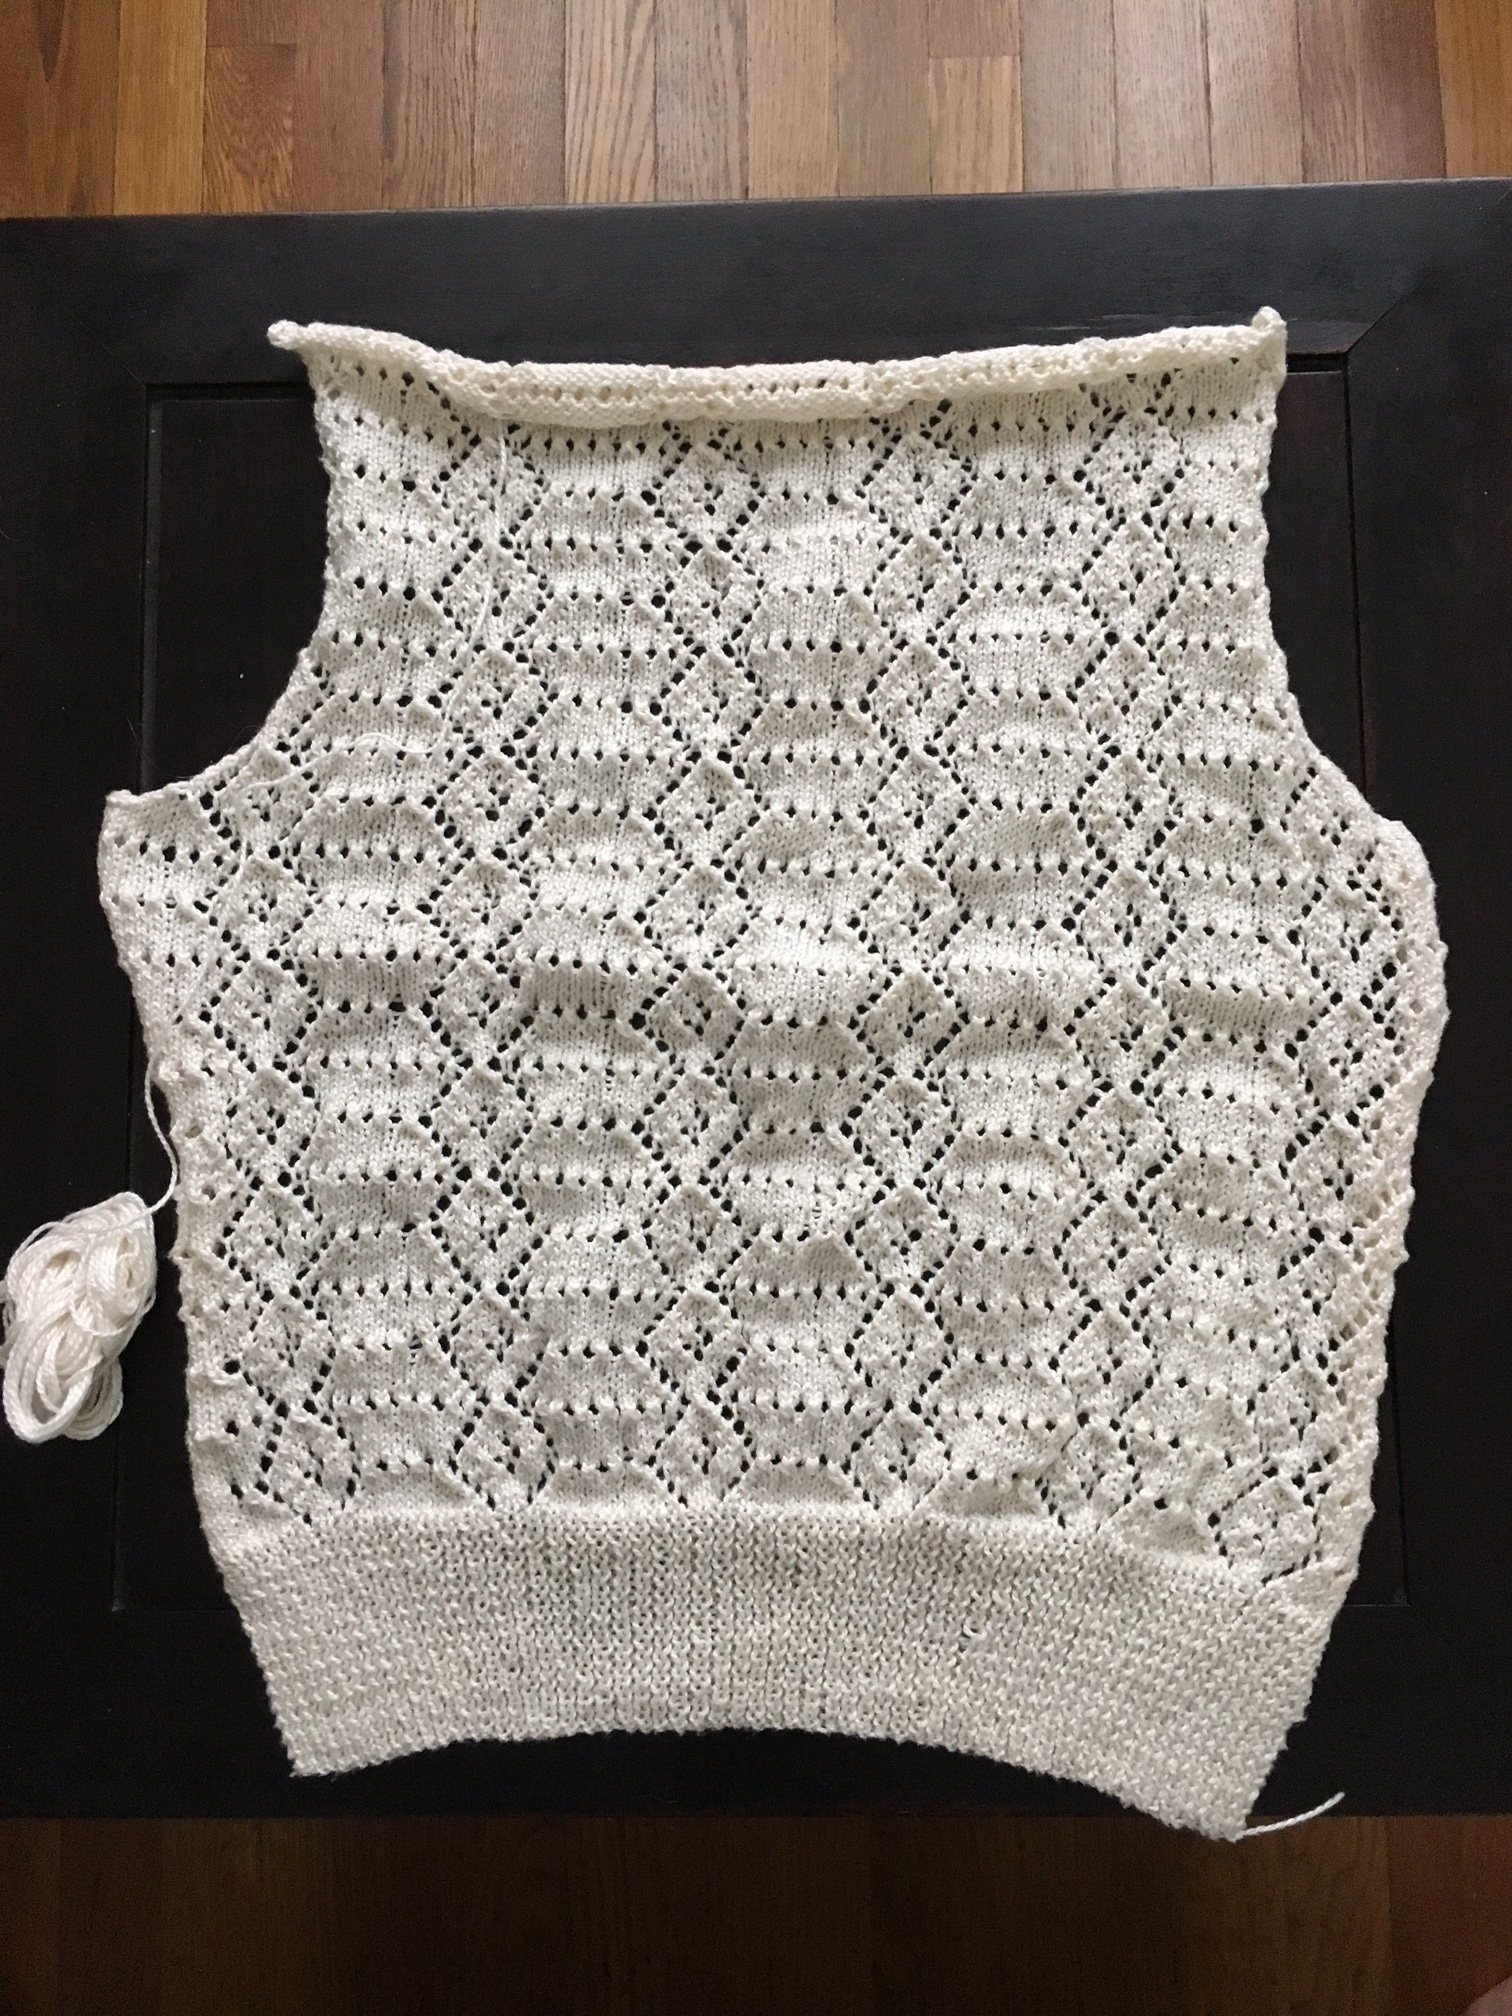 Here is the back finished.  I was able to knit it using not quite a whole skein, so that meant that I only had two ends to weave in.